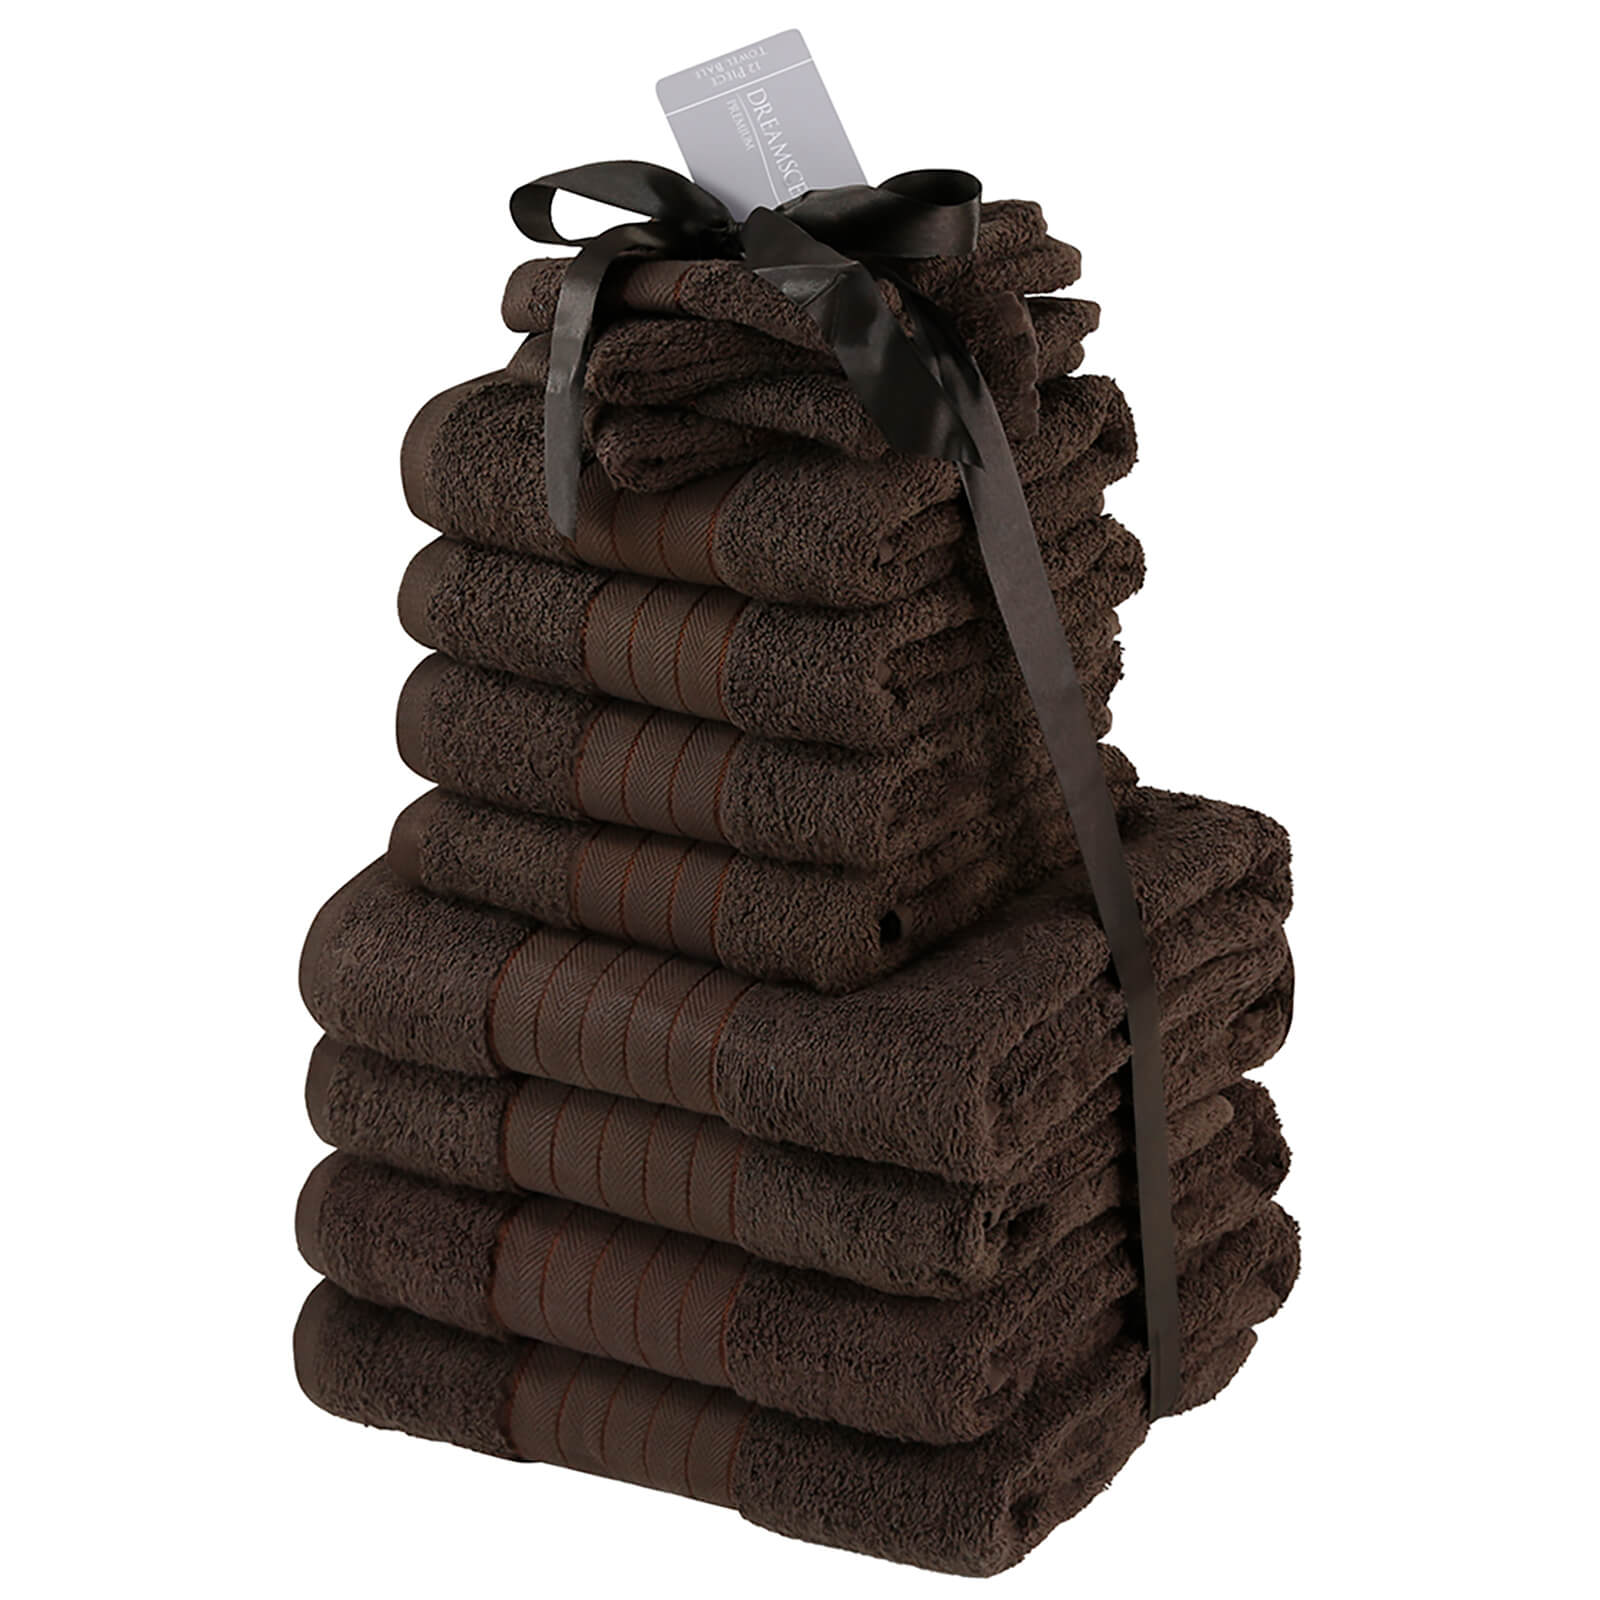 Highams 100% Cotton 12 Piece Towel Bale (500GSM) - Chocolate